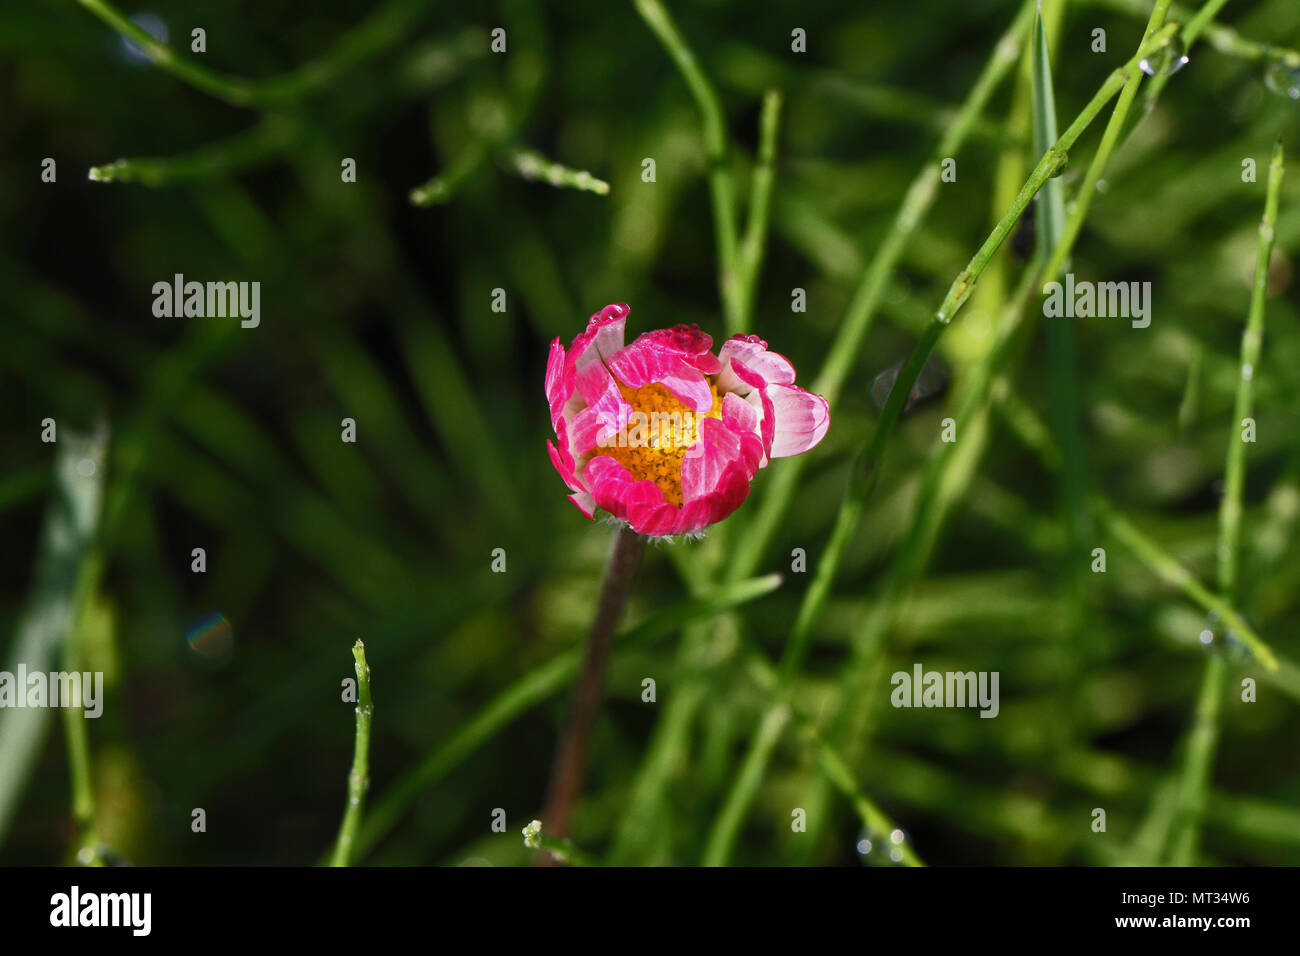 common lawn daisy bud showing pink underside waiting to open very close up Latin bellis perennis compositae in springtime in Italy - Stock Image